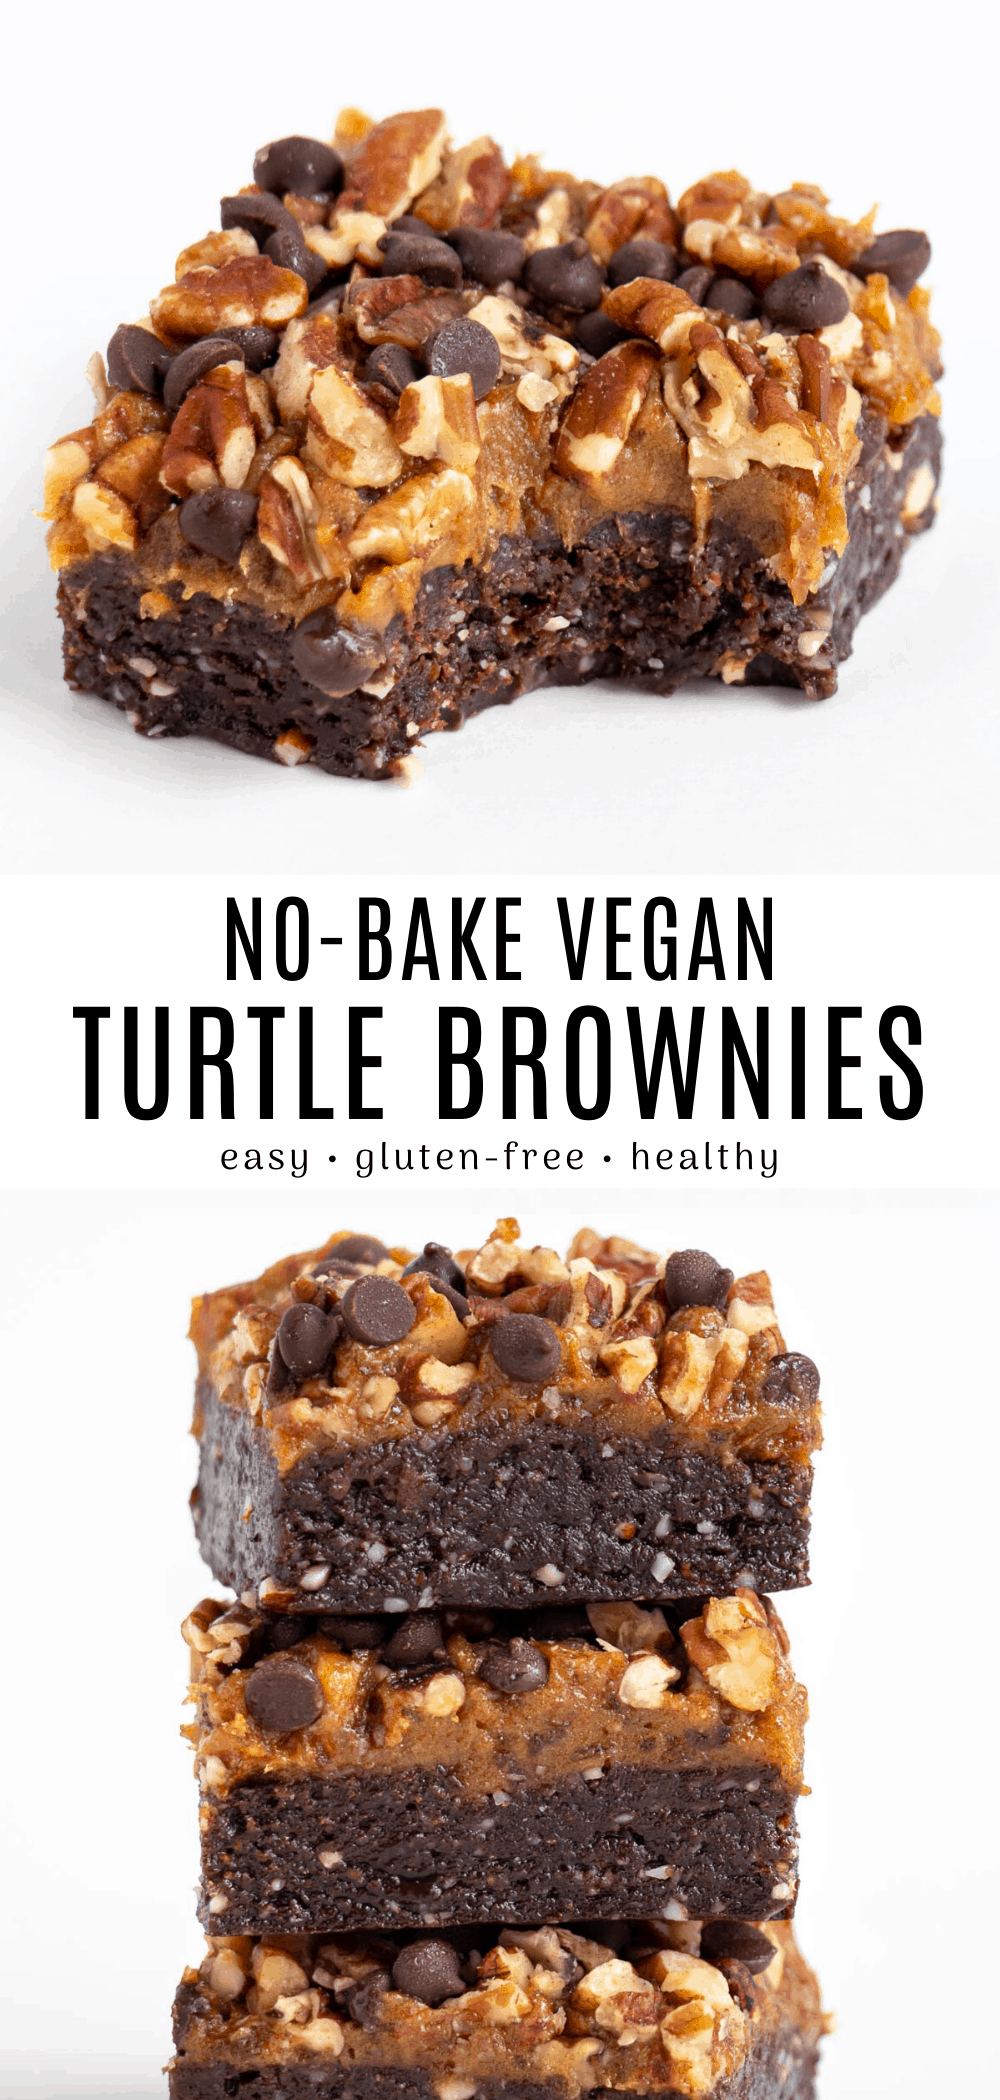 No Bake Turtle Brownies (Vegan, Gluten-Free) No Bake Turtle Brownies (Vegan, Gluten-Free)